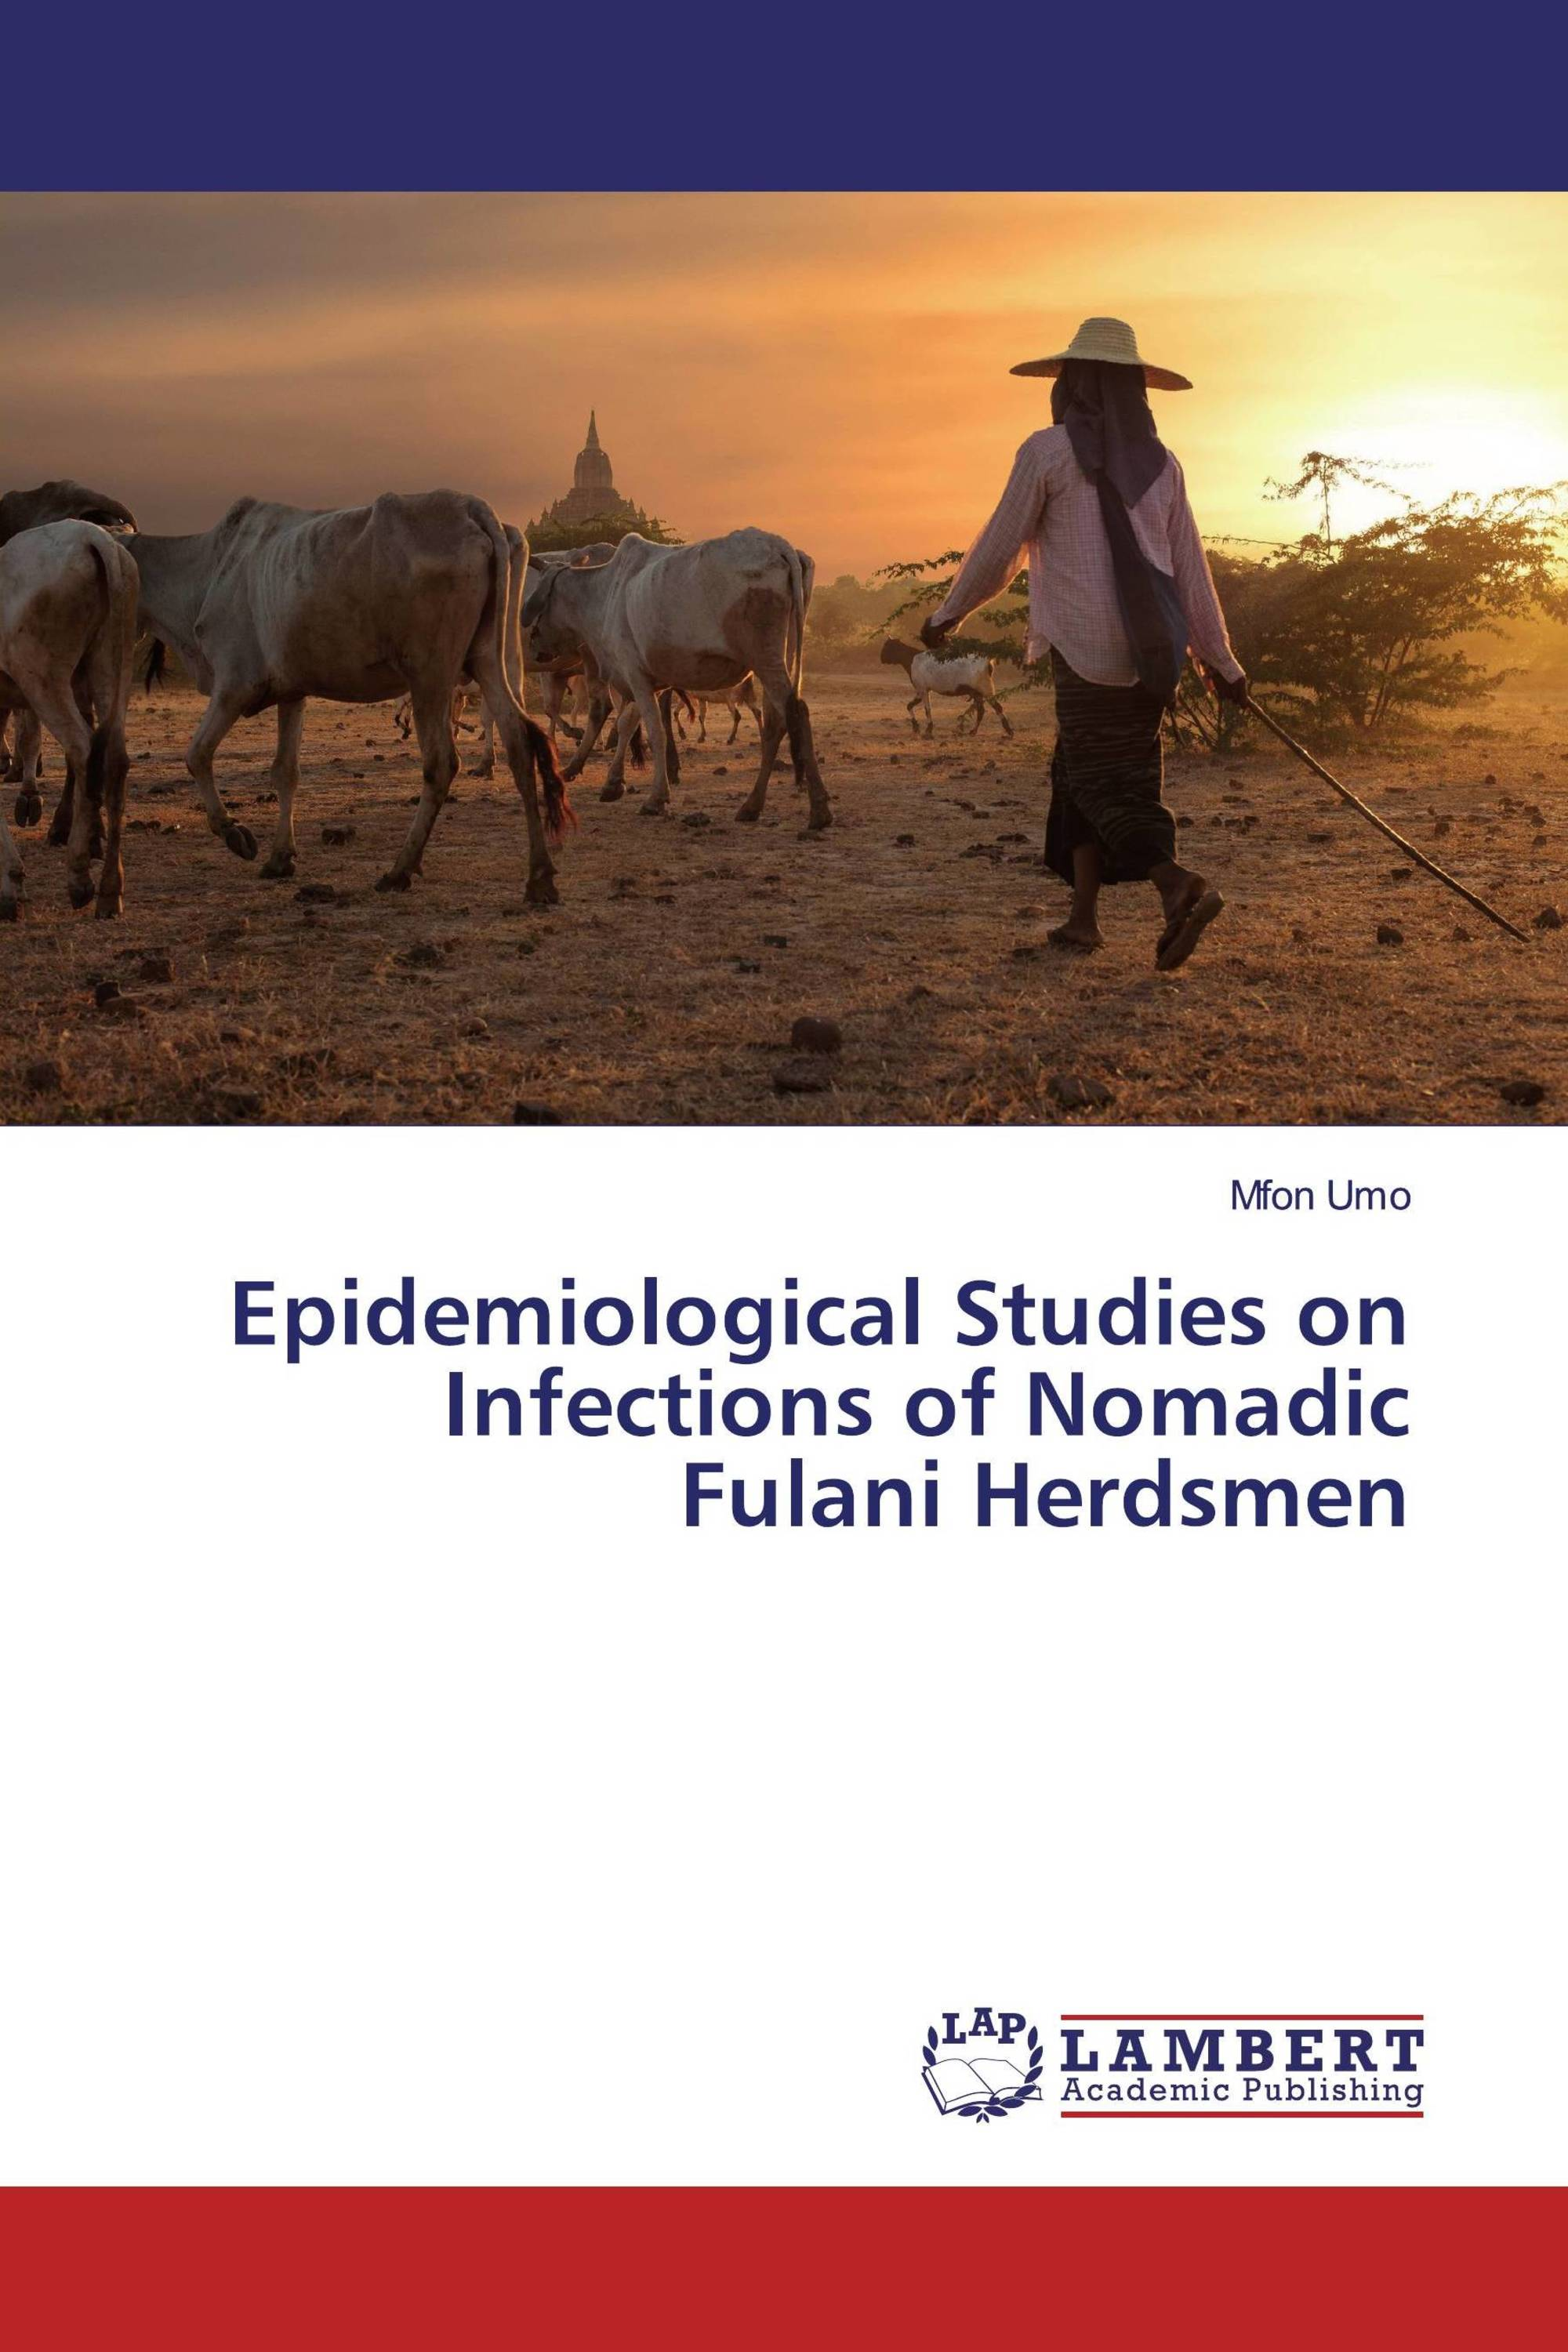 Epidemiological Studies on Infections of Nomadic Fulani Herdsmen